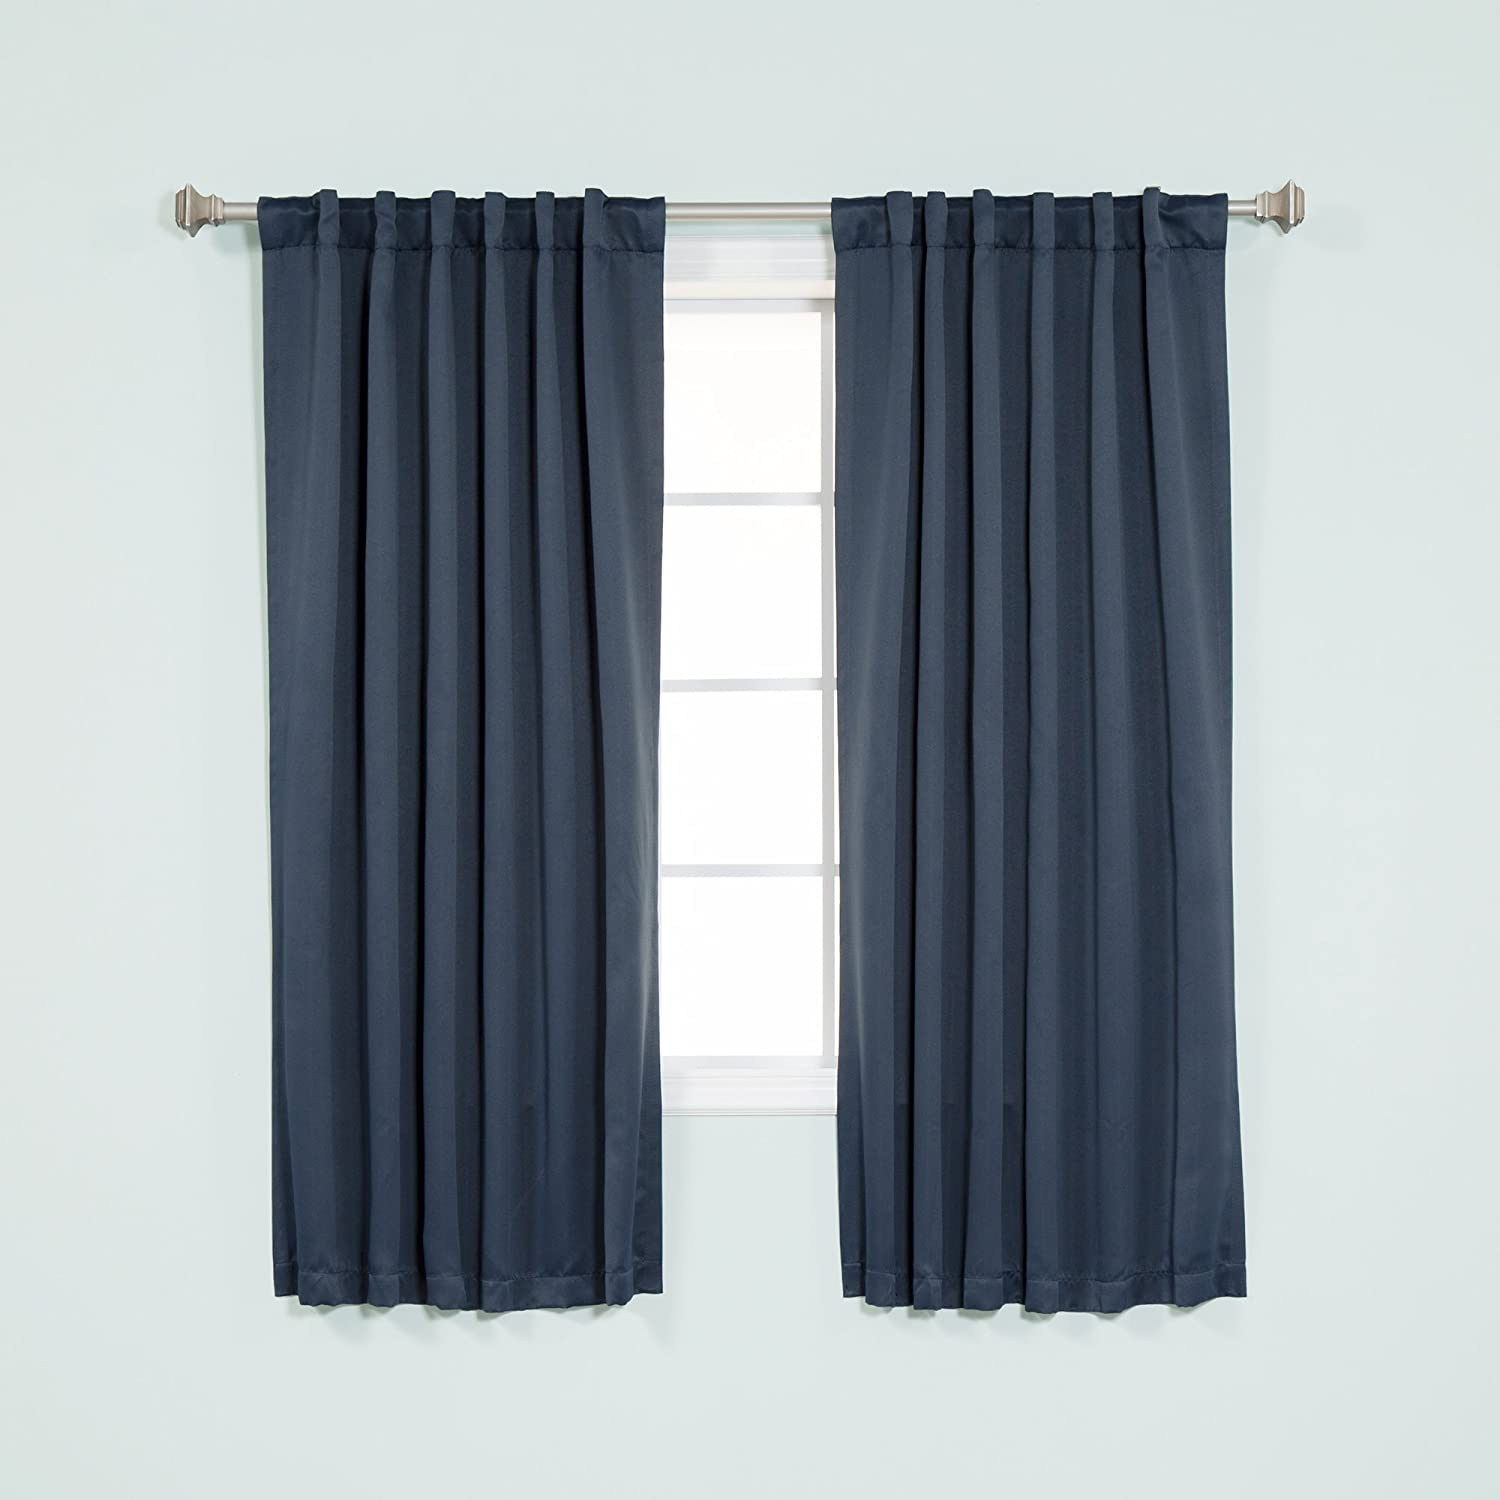 Best Home Fashion Thermal Insulated Blackout Curtains - Back Tab/ Rod Pocket - Navy